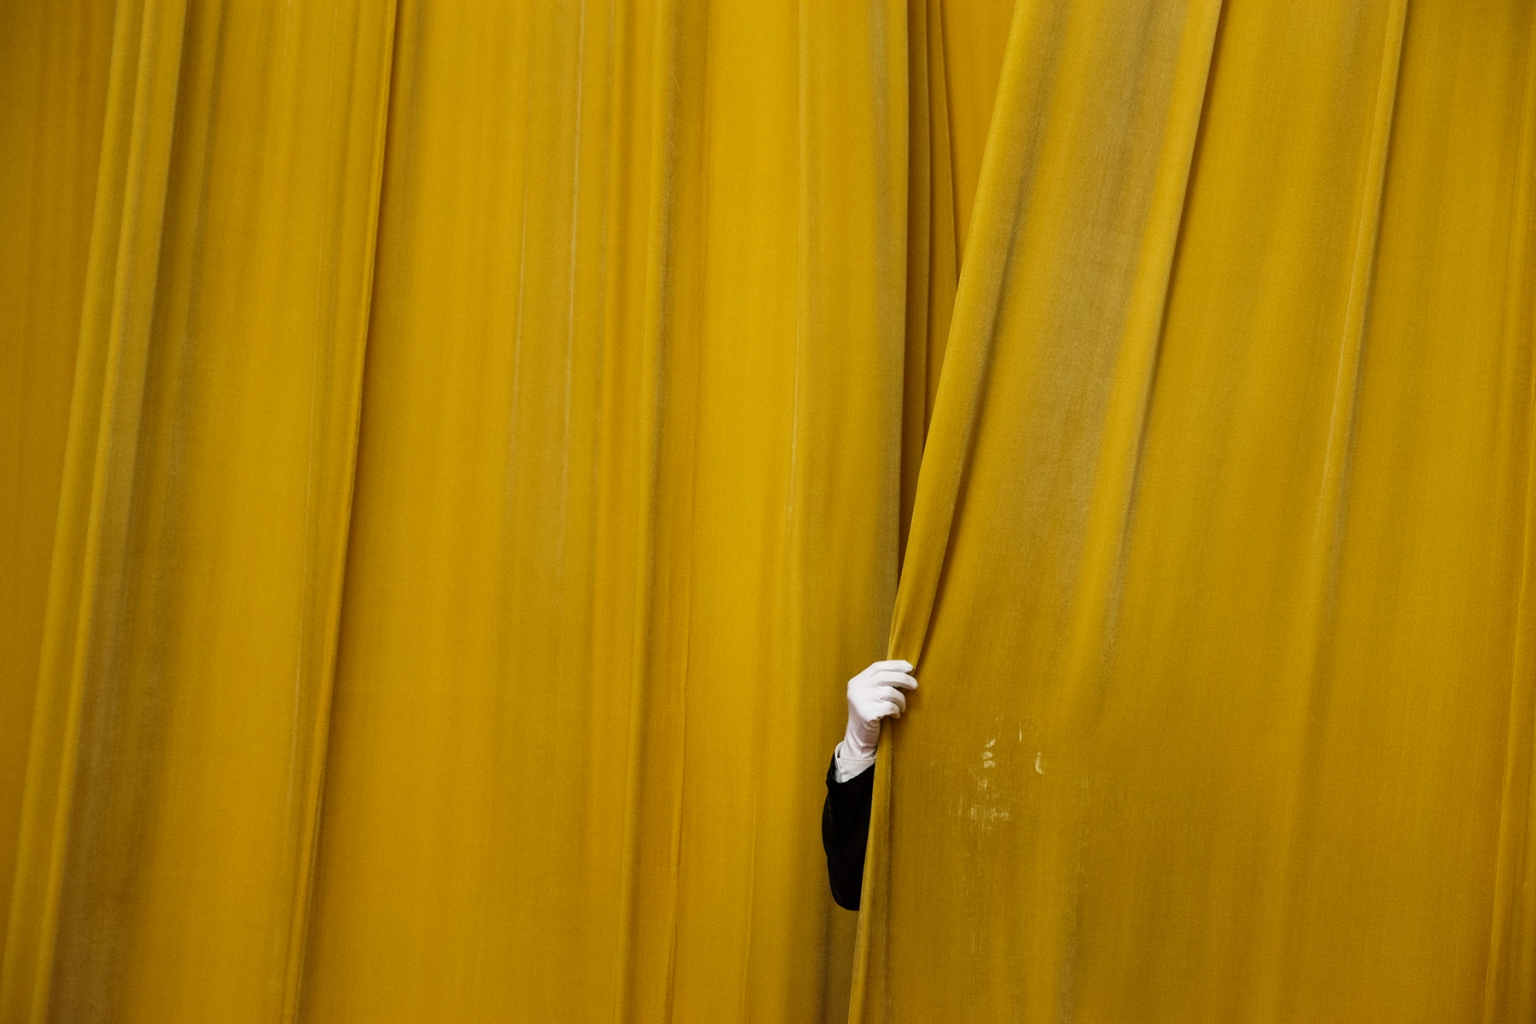 A security official closes a curtain at the Great Hall of the People before a meeting between former U.S. Secretary of State Henry Kissinger and China's President Xi Jinping in Beijing on Nov. 8. THOMAS PETER/AFP/Getty Images